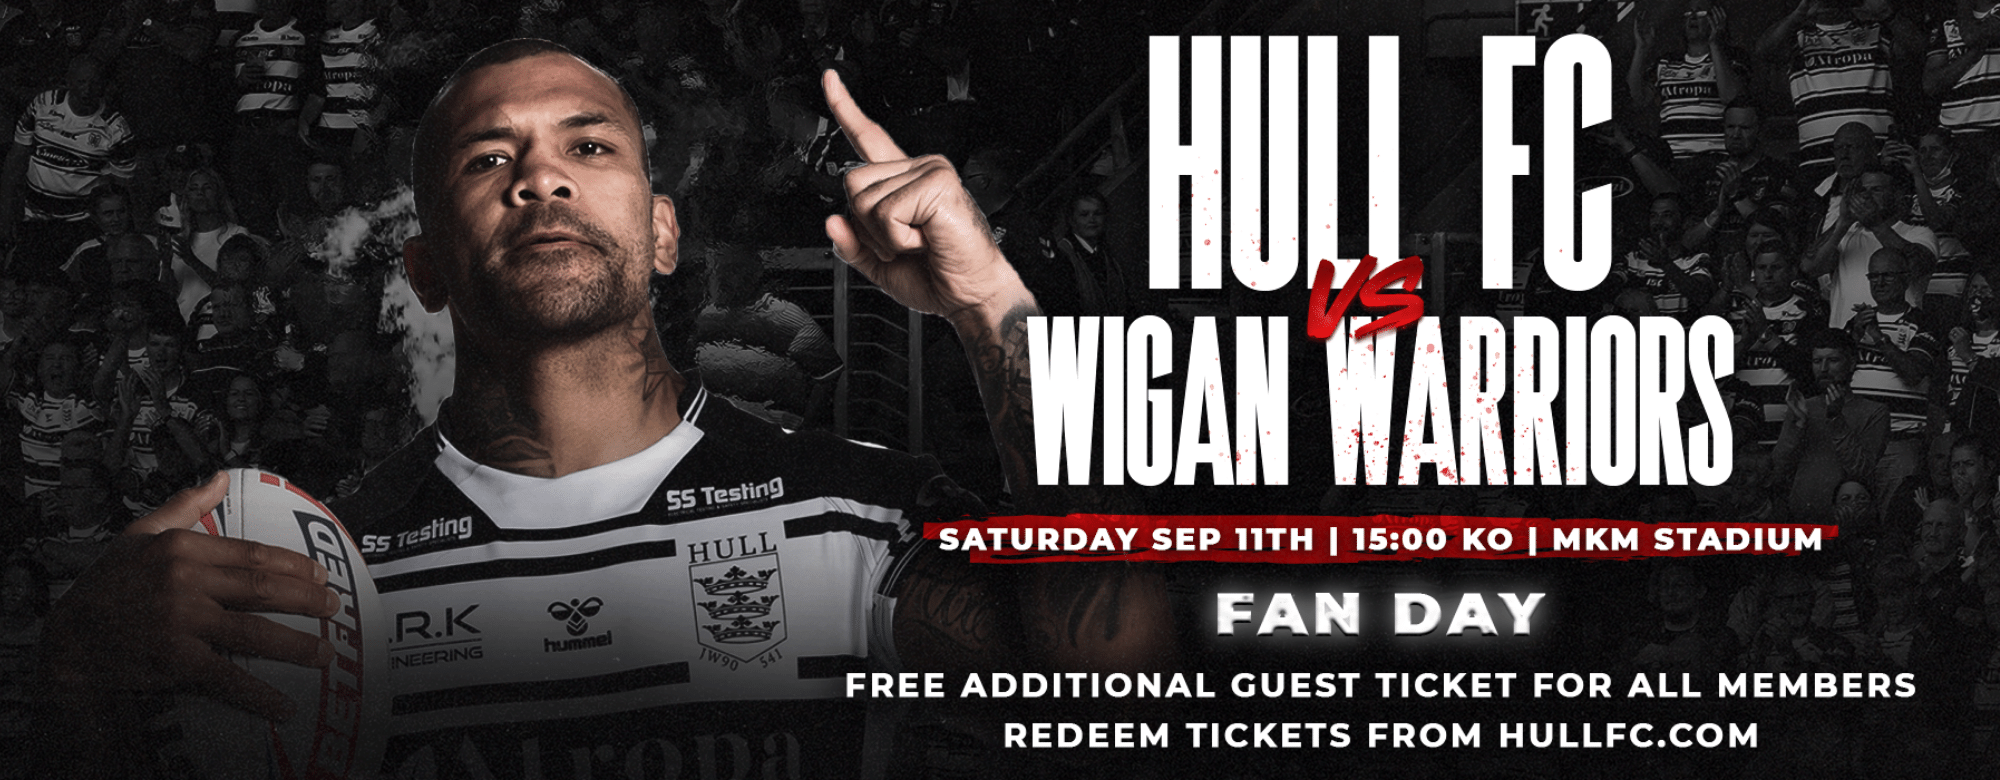 How To Buy Wigan Tickets On Matchday